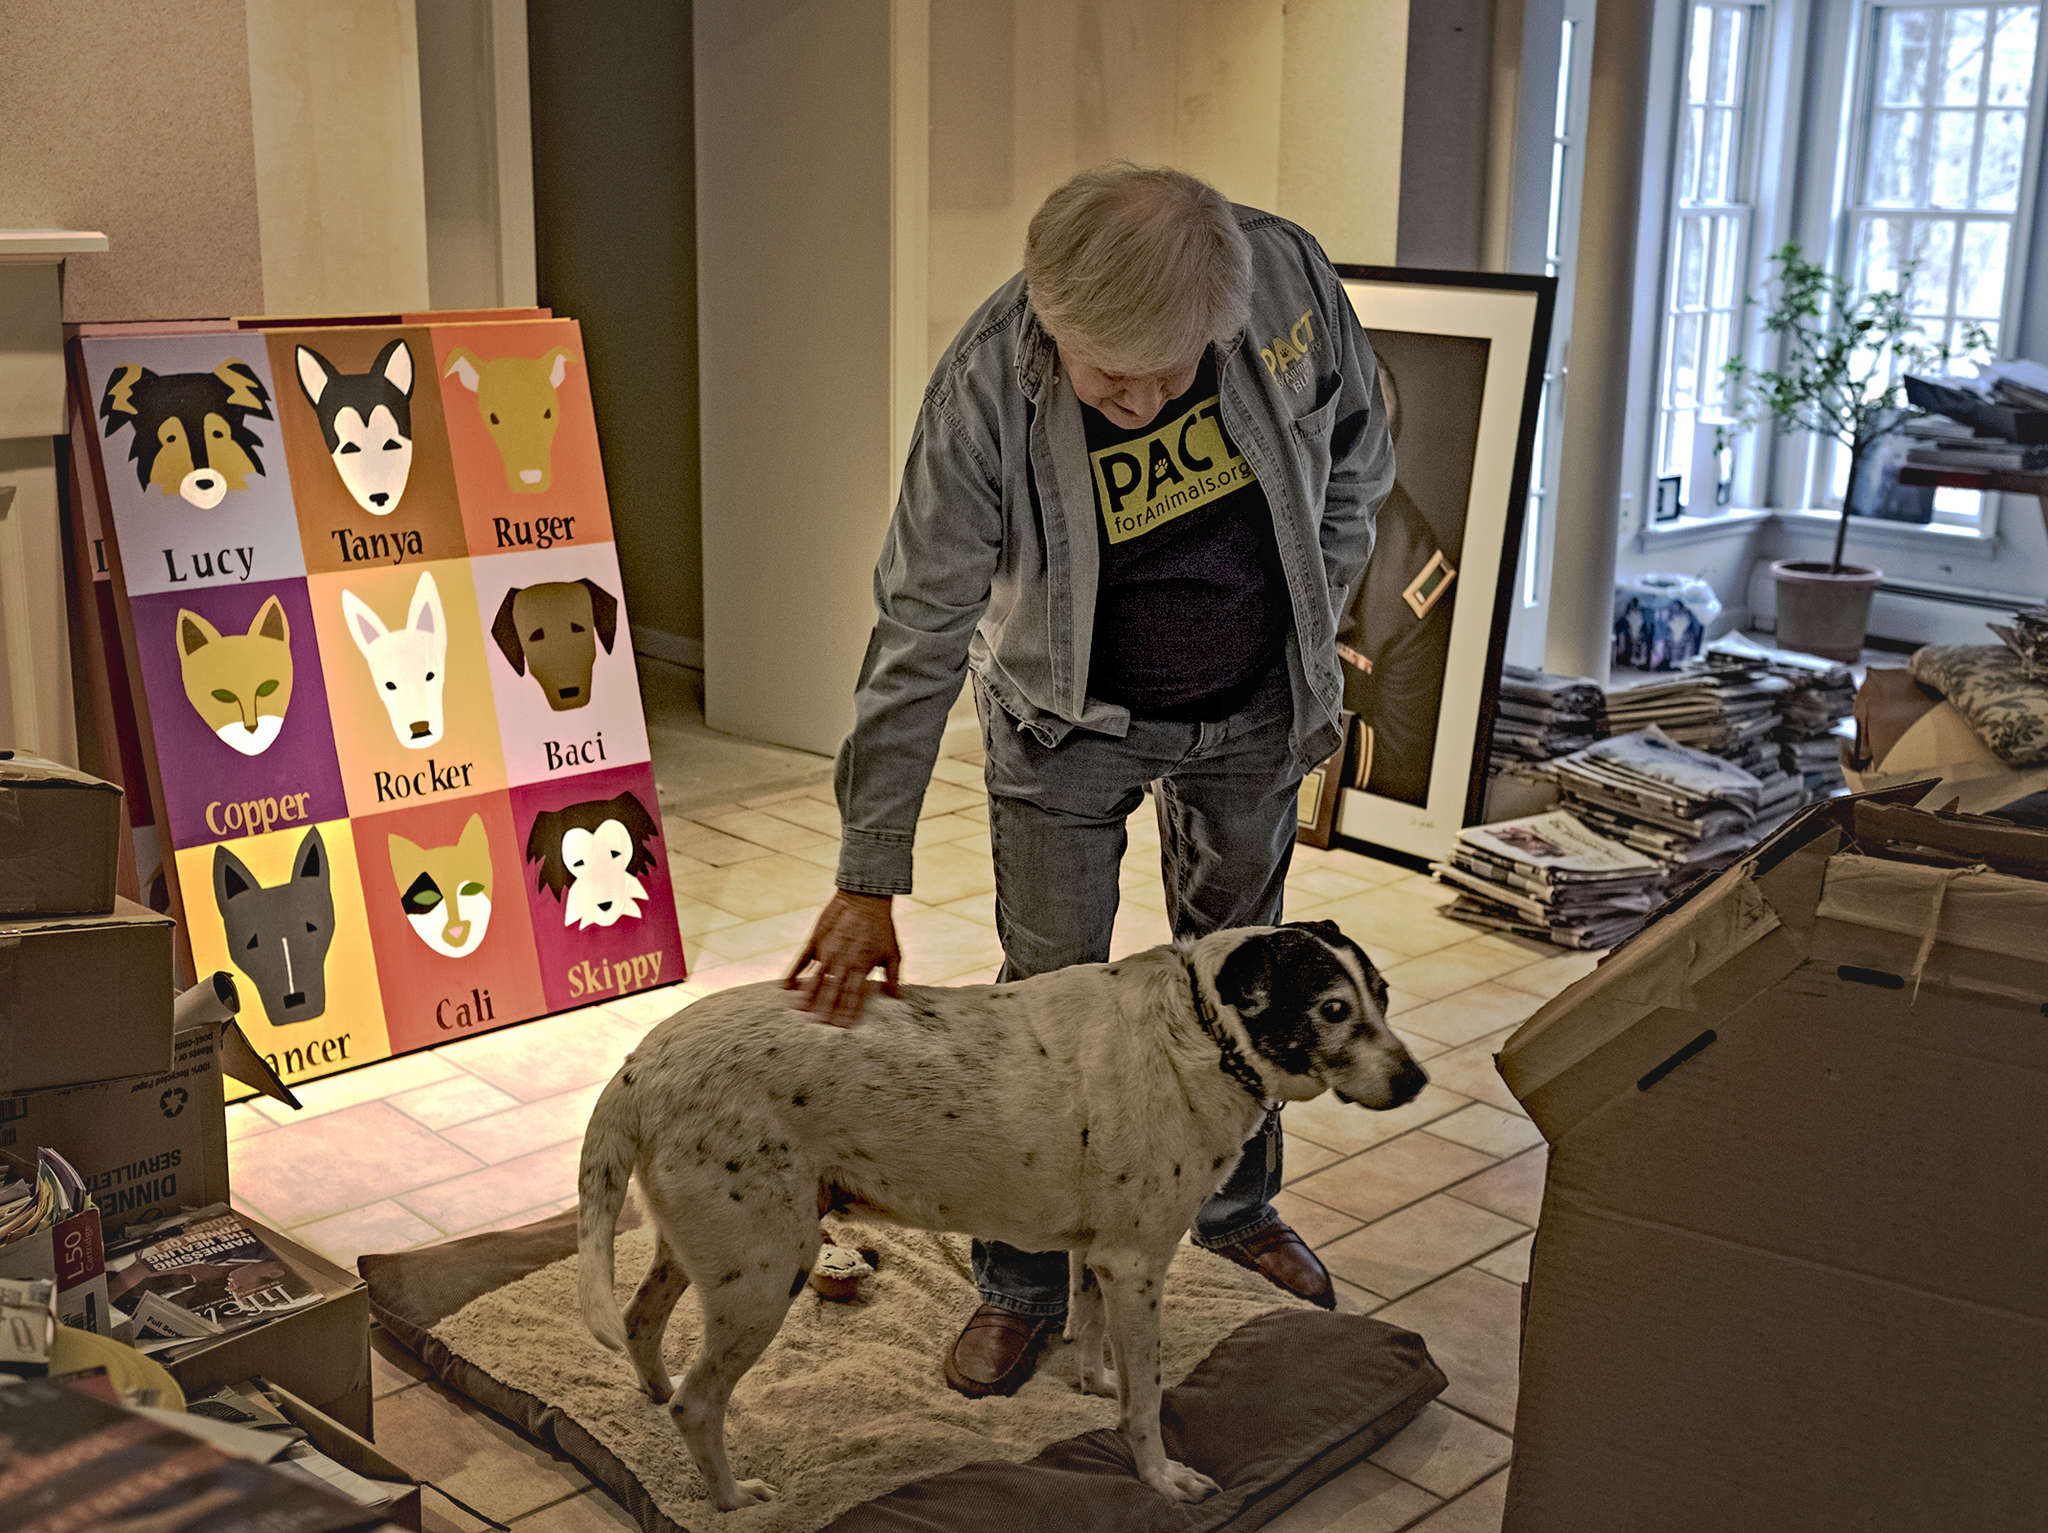 Buzz Miller founded PACT for Animals, a nonprofit that finds foster homes for pets of service members and more. His next project will pair animals with retirement-community residents.